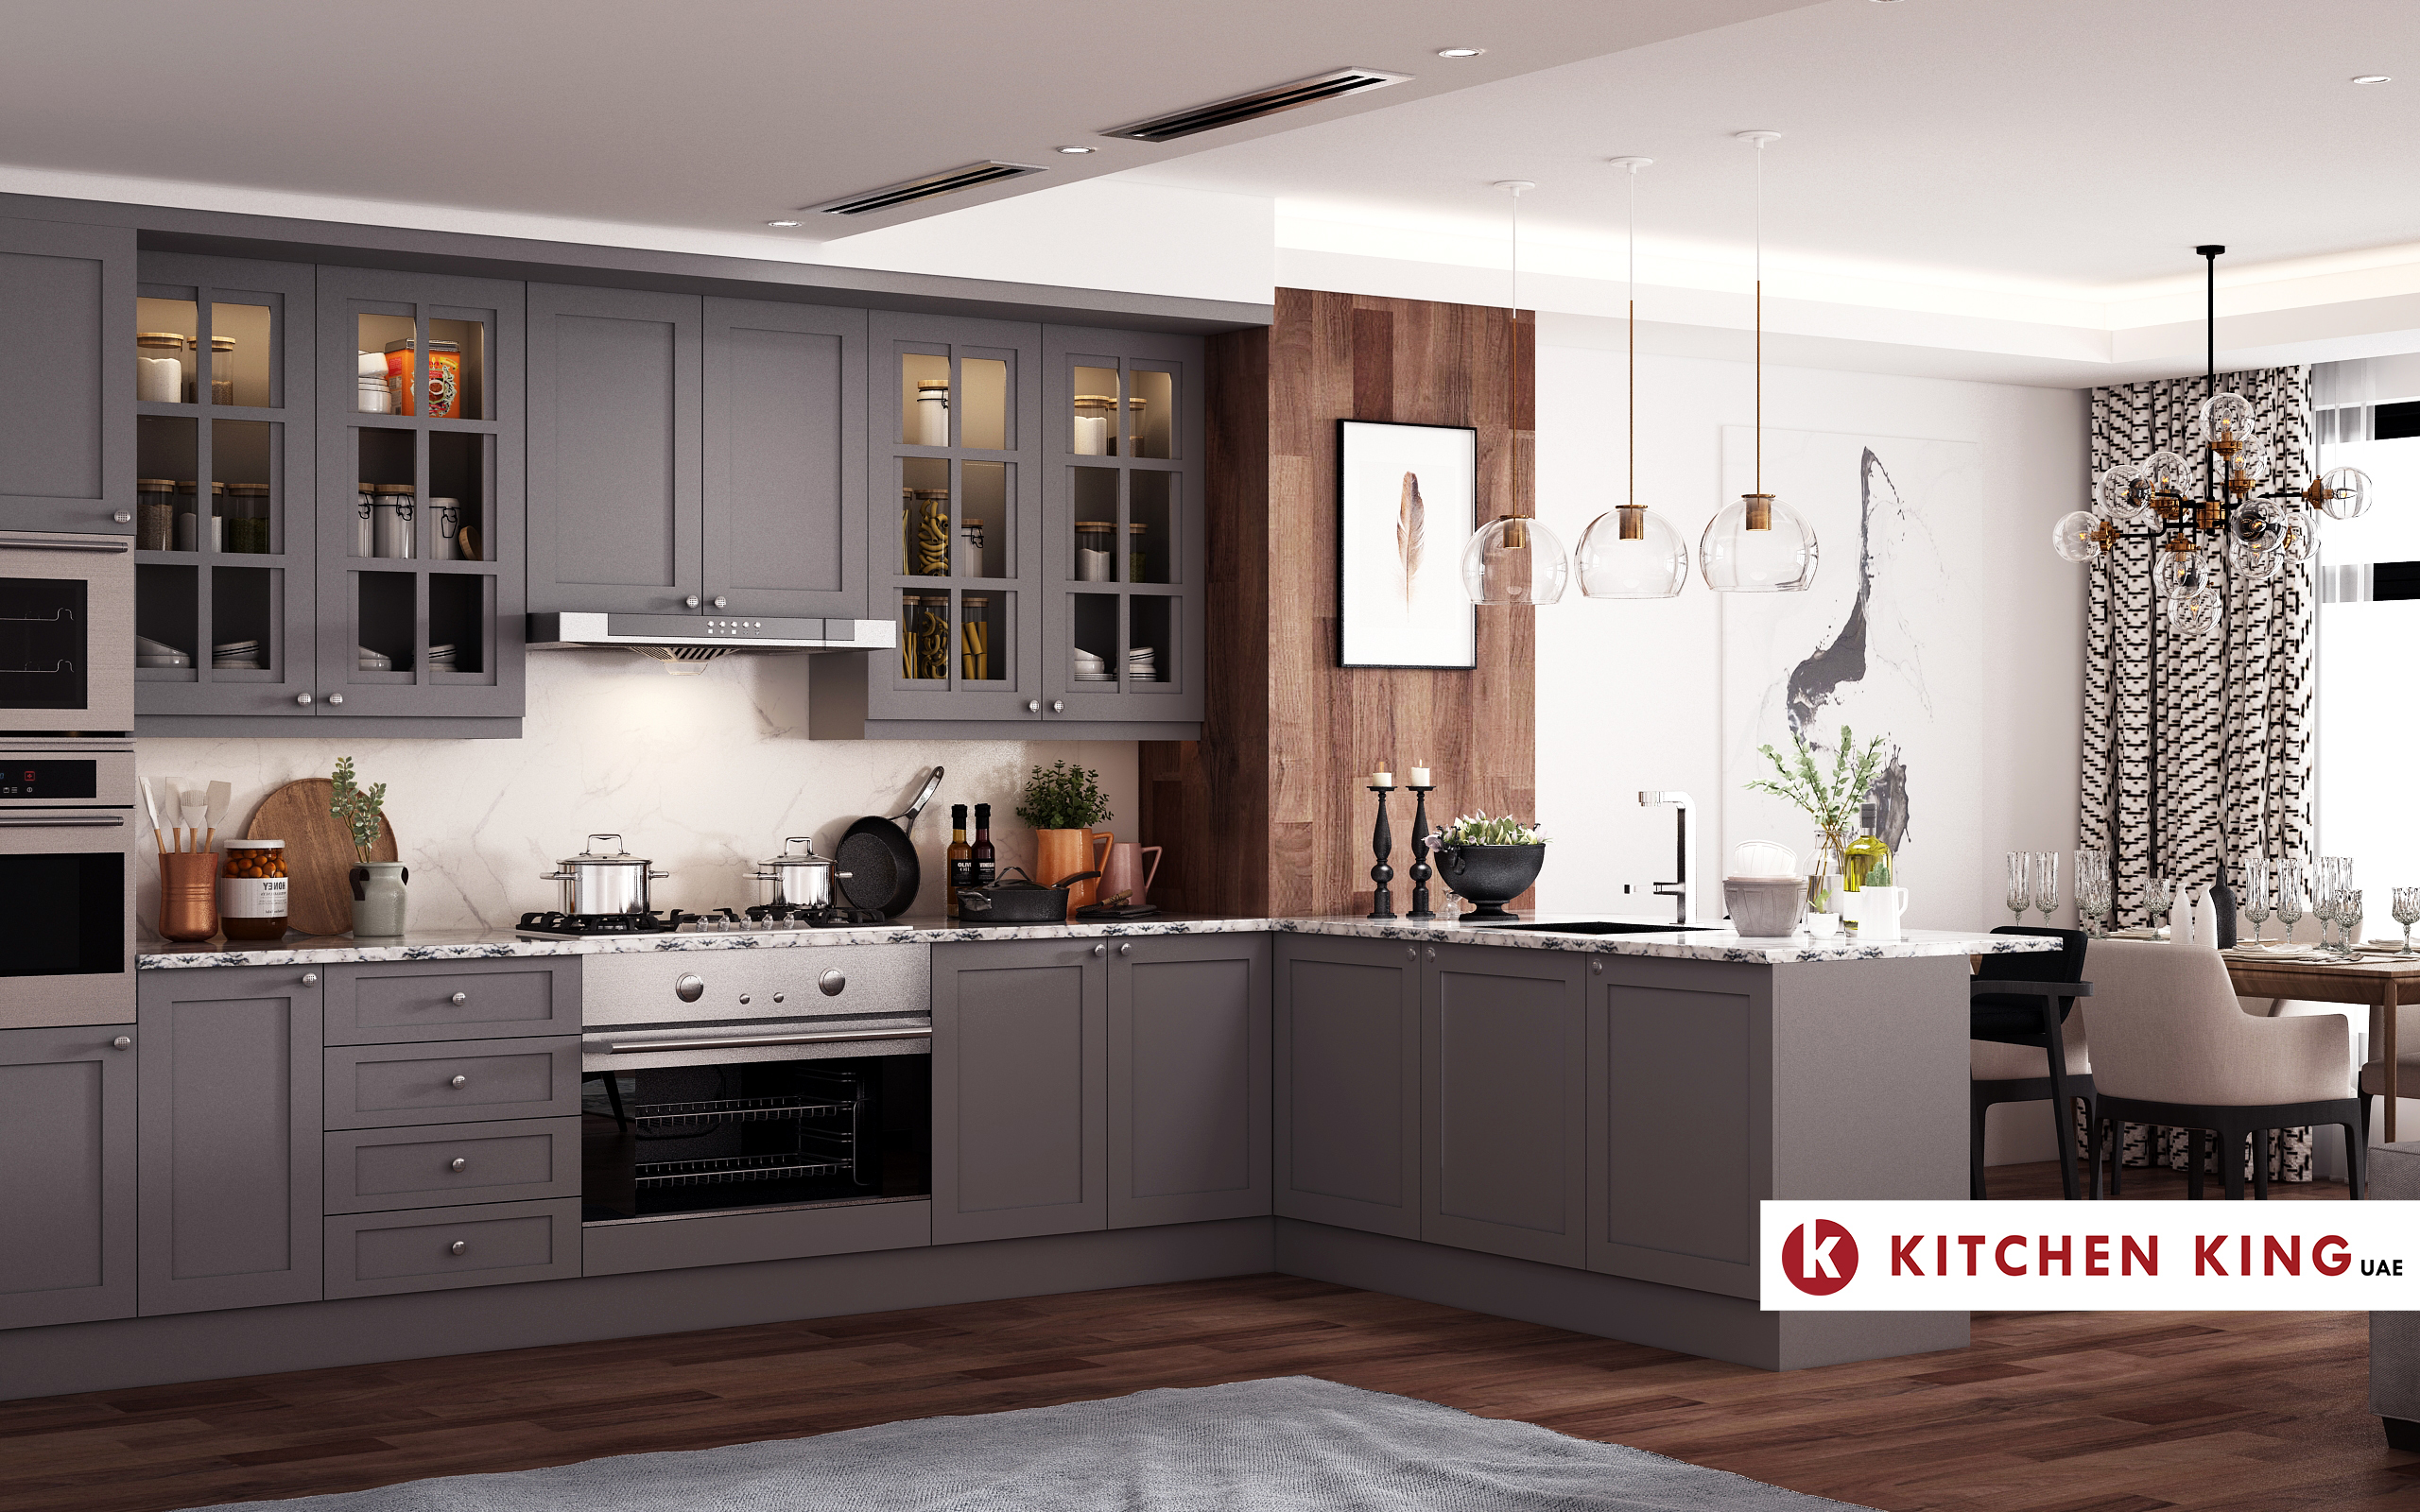 Kitchen Cabinet And Wardrobes Design Company In Uae Kitchen King